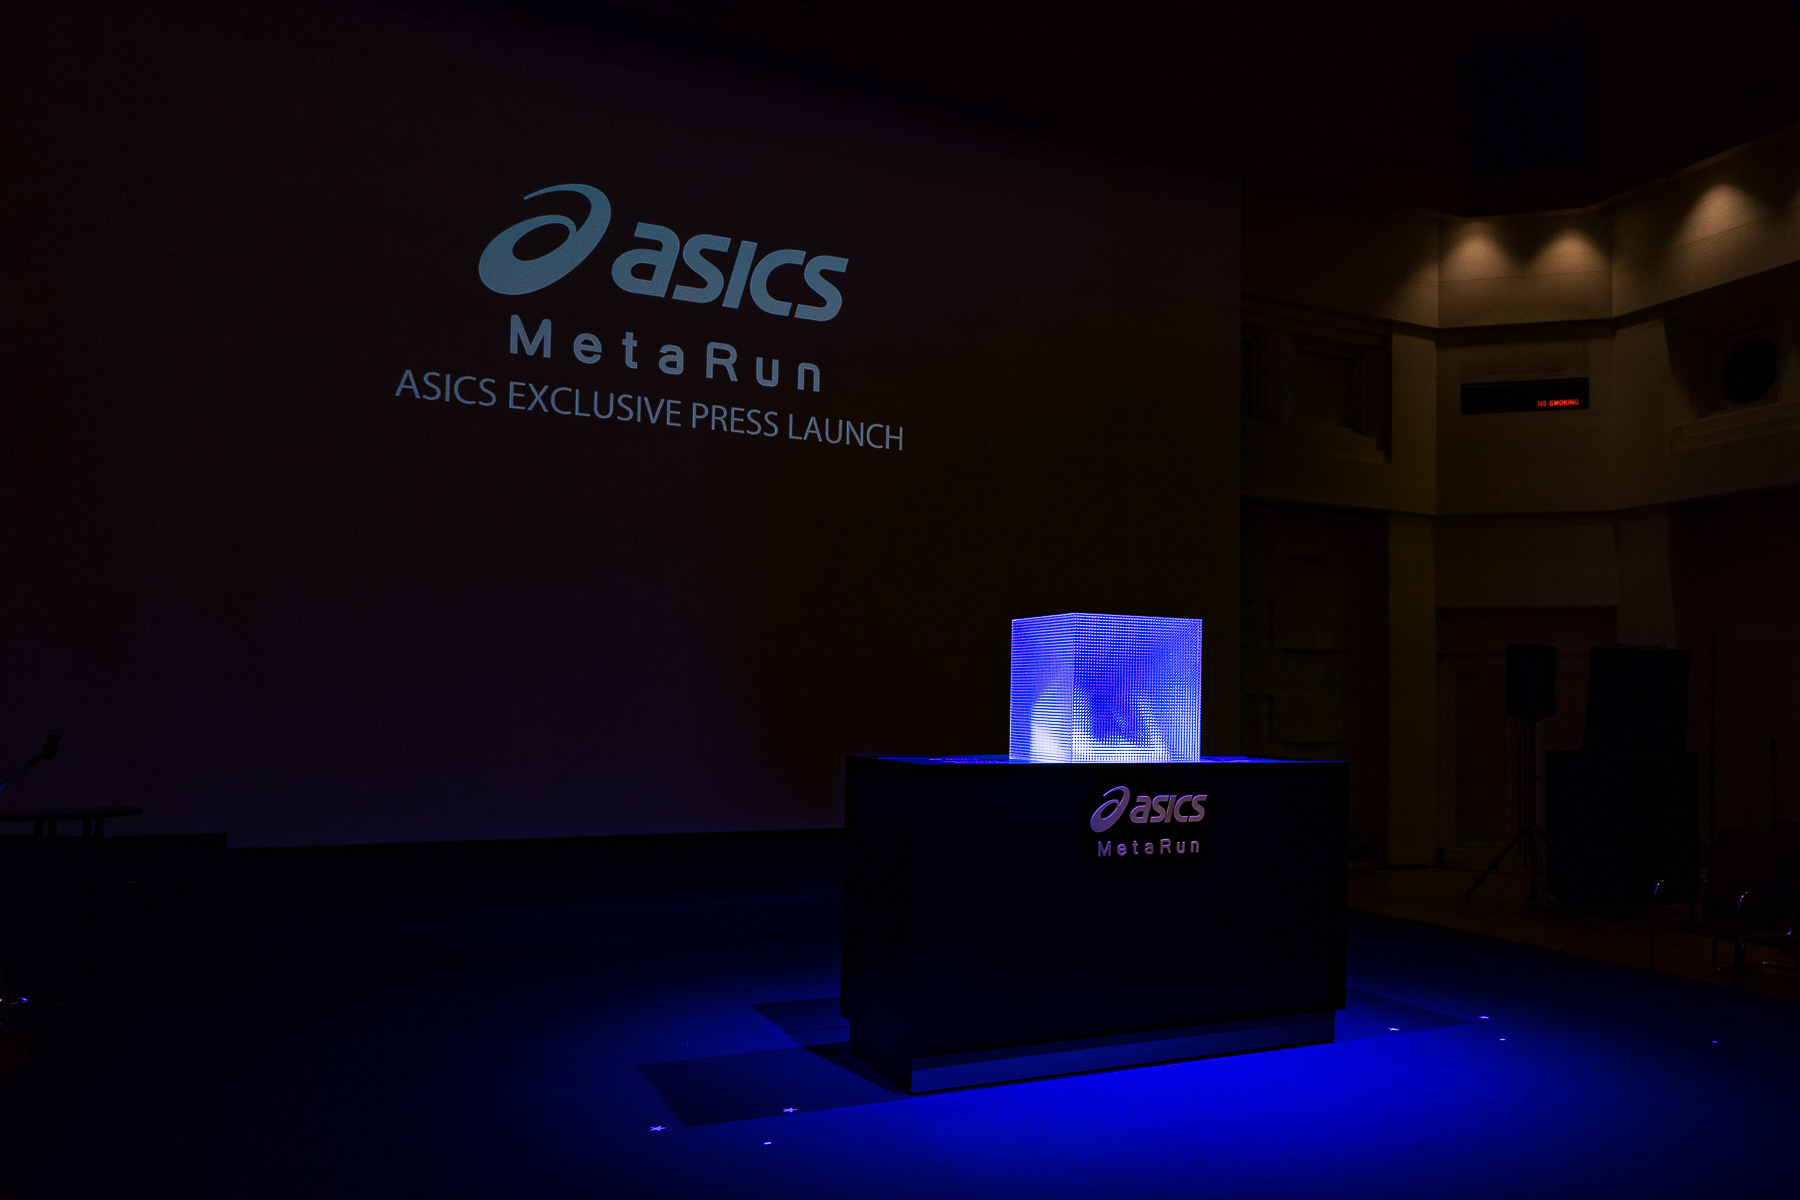 asics-metarun-official-launch-event-in-tokyo